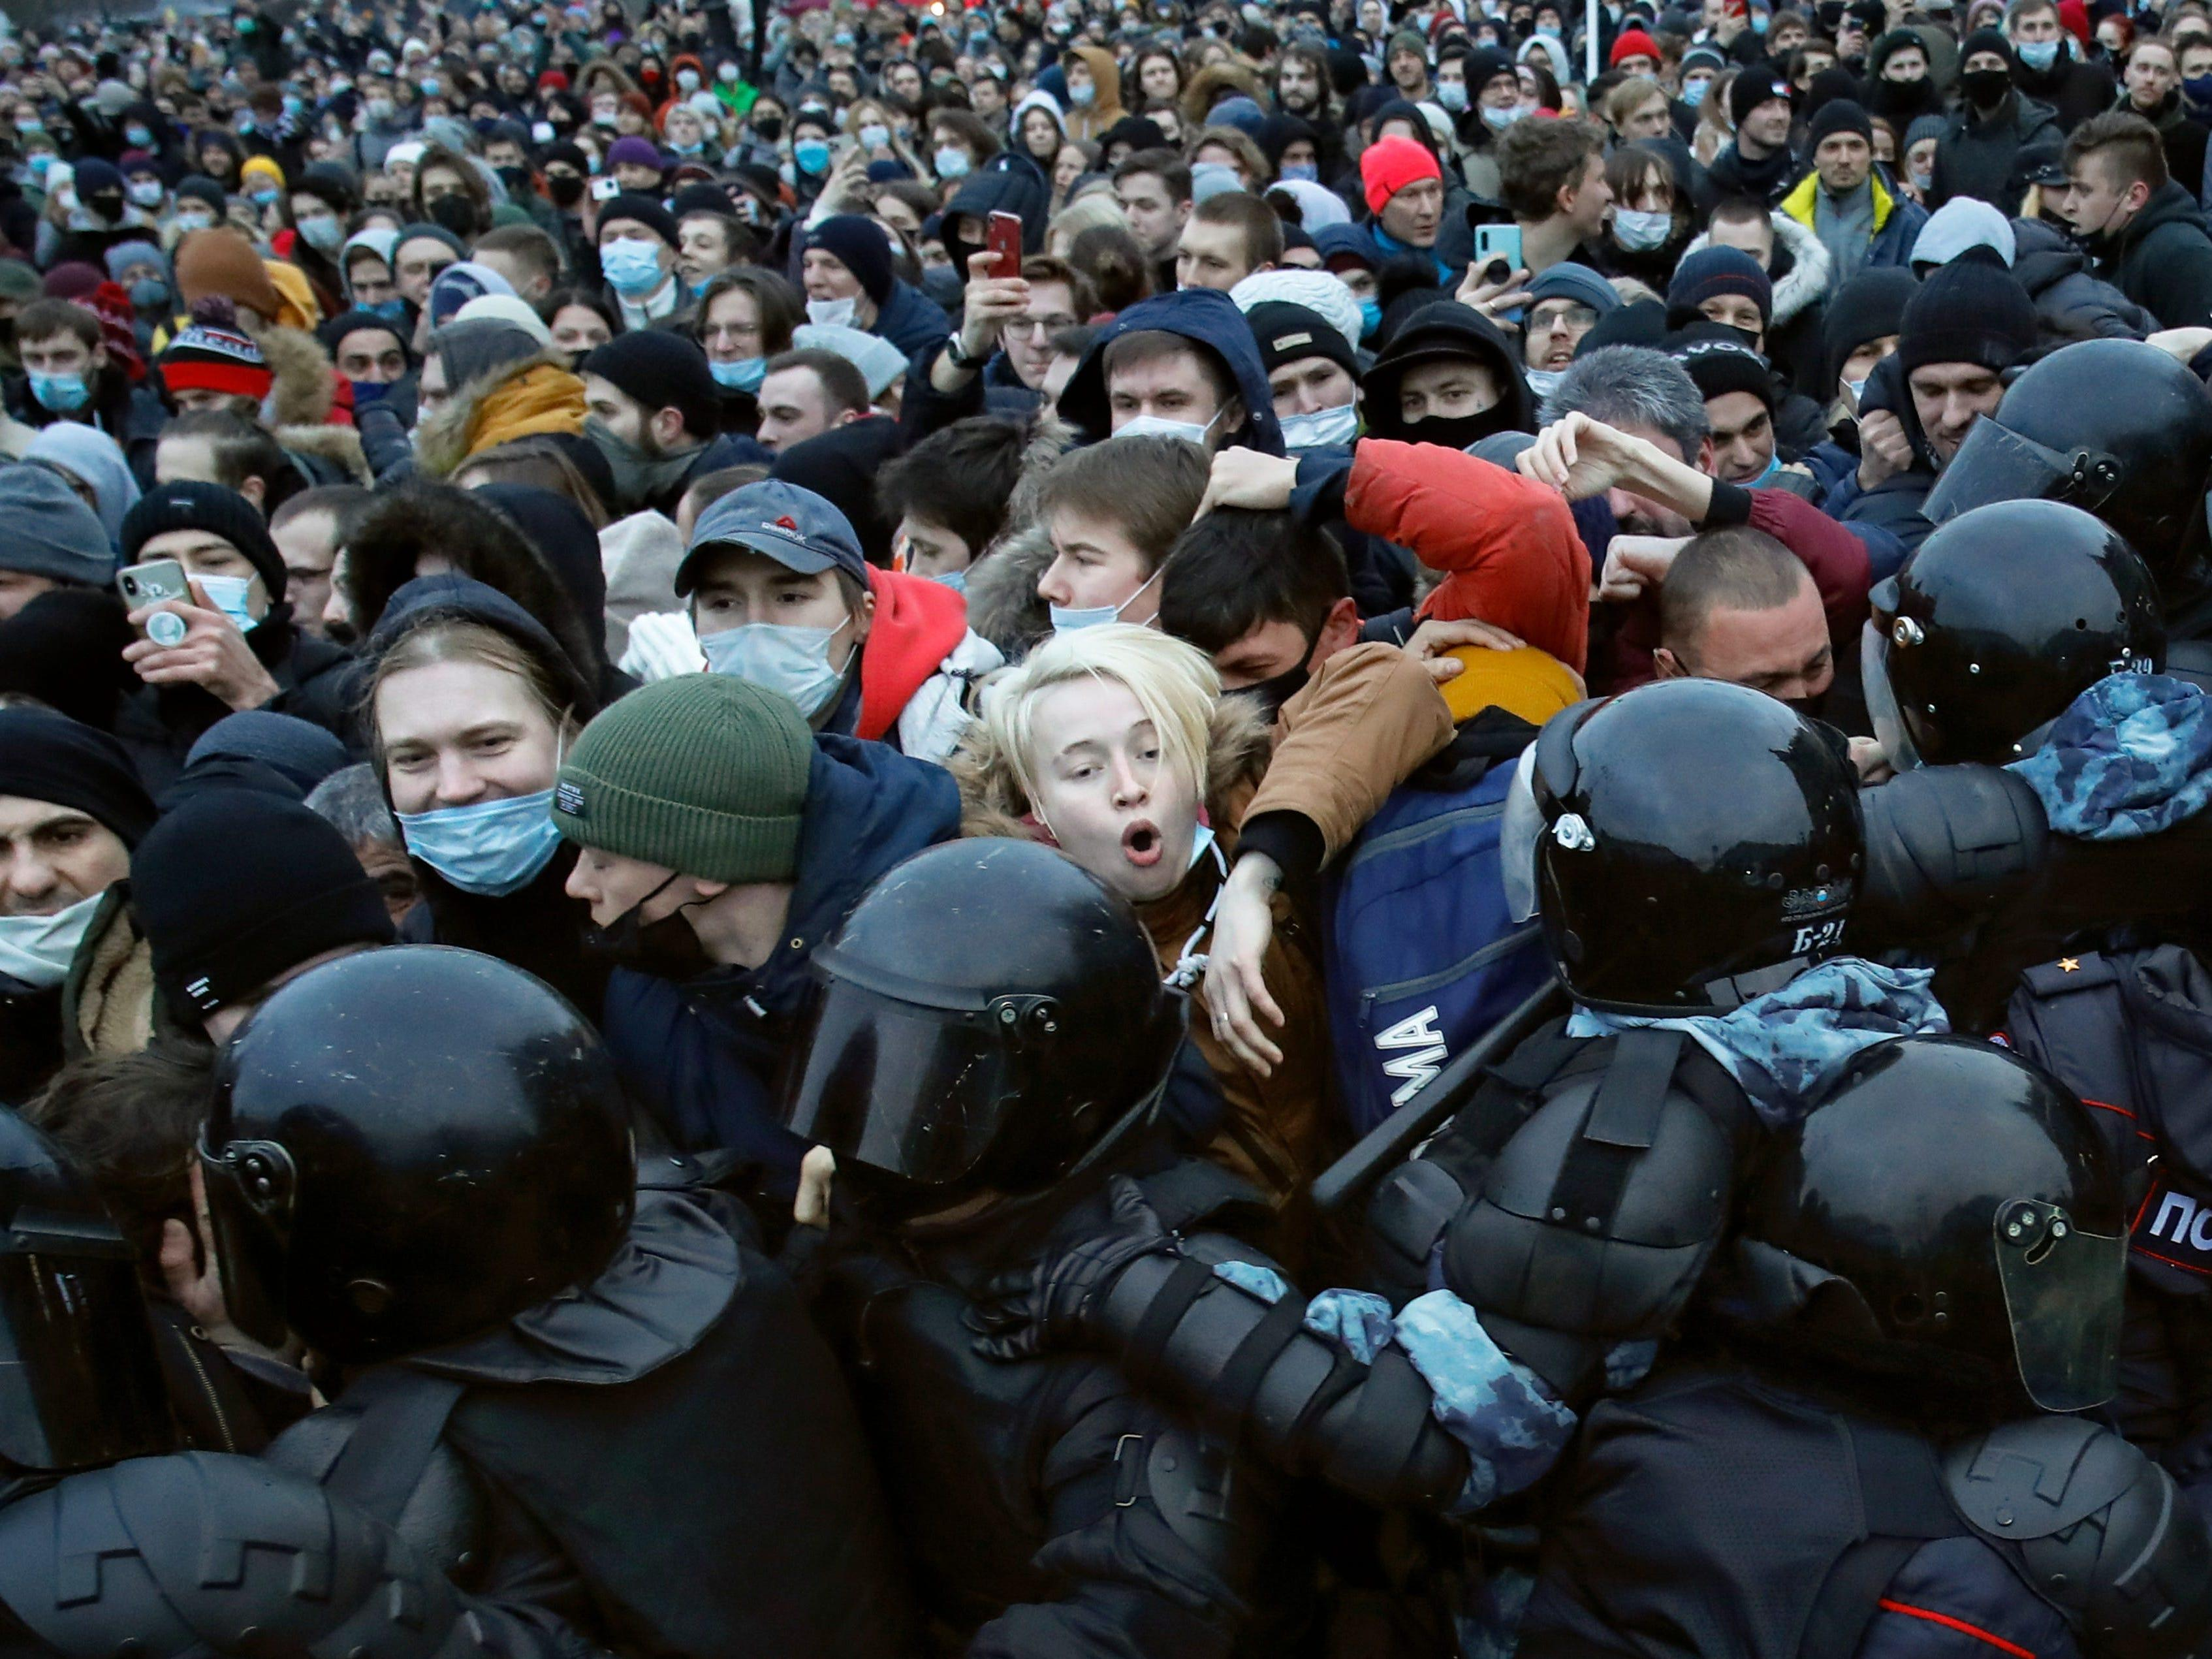 The wife of Russian opposition leader Alexei Navalny is arrested as mass protests defy Putin and call for his release from prison